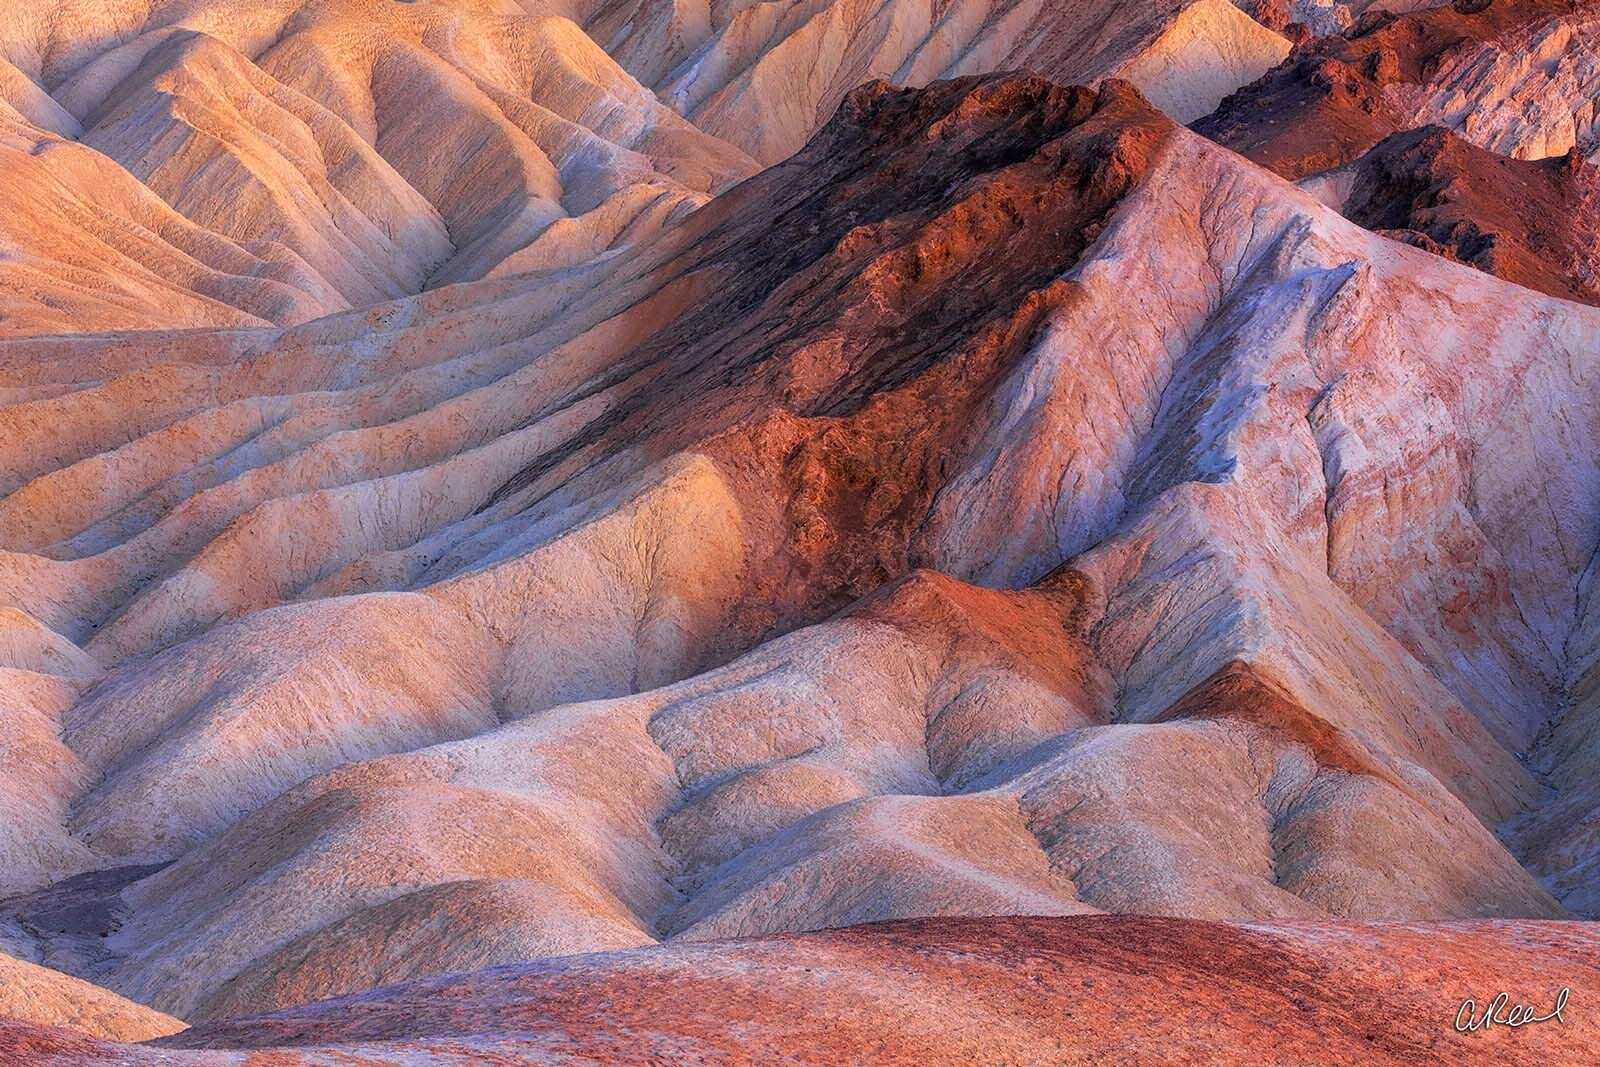 Death Valley, furnace creek, photo